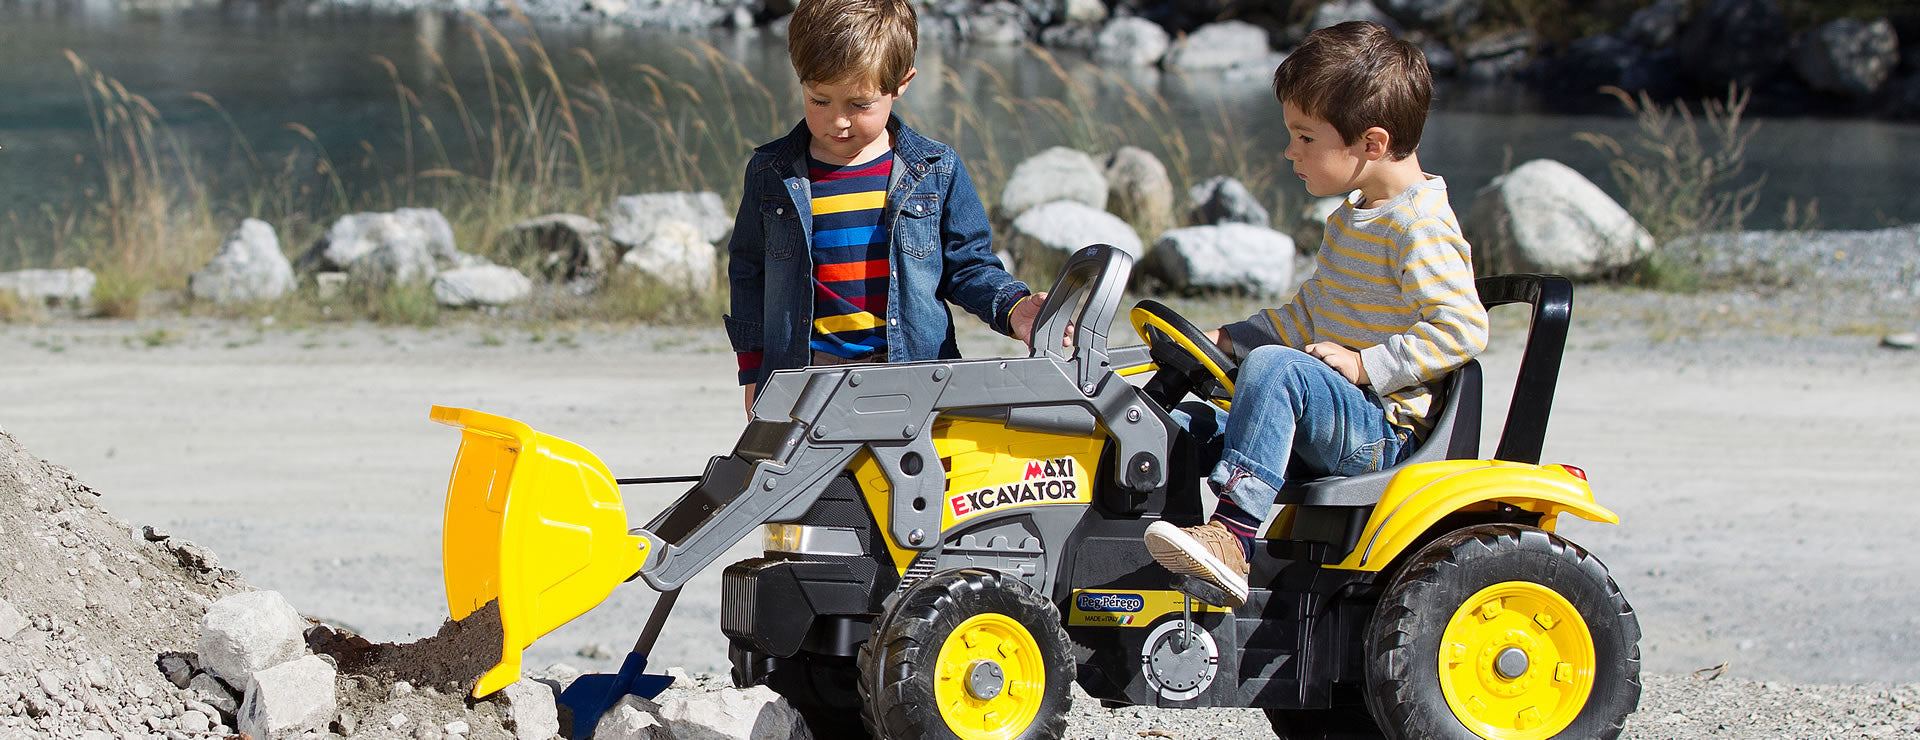 Peg Perego Maxi Excavator Pedal Powered Kids Ride-On